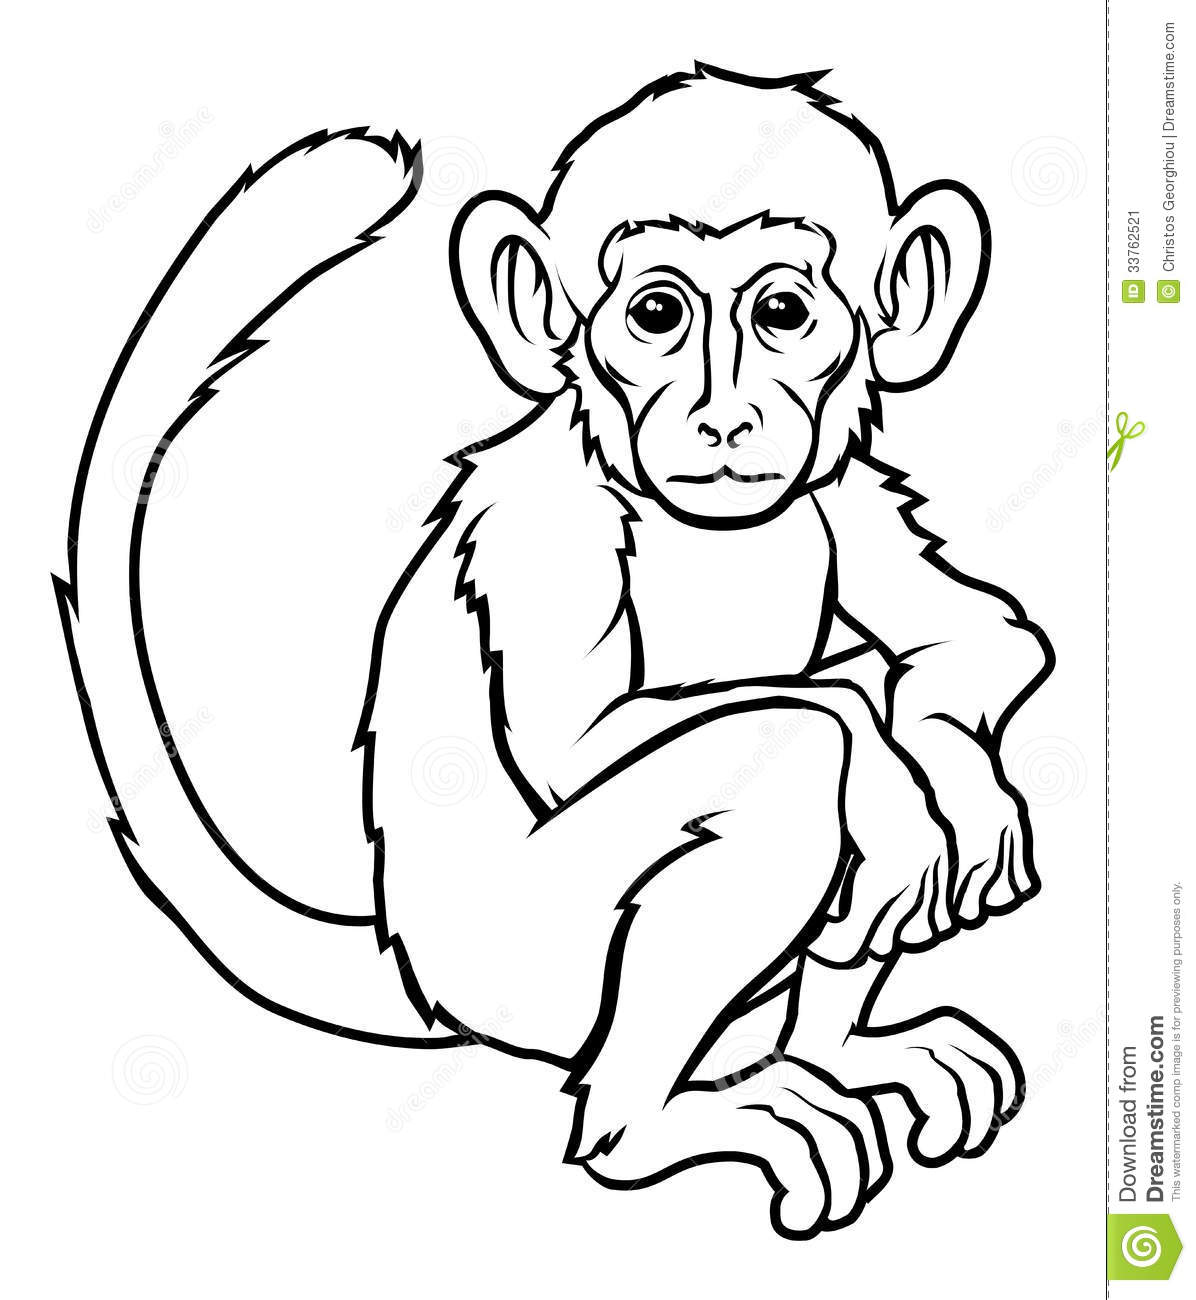 3e746cc0e Stylised Monkey Illustration Stock Vector - Illustration of monky ...